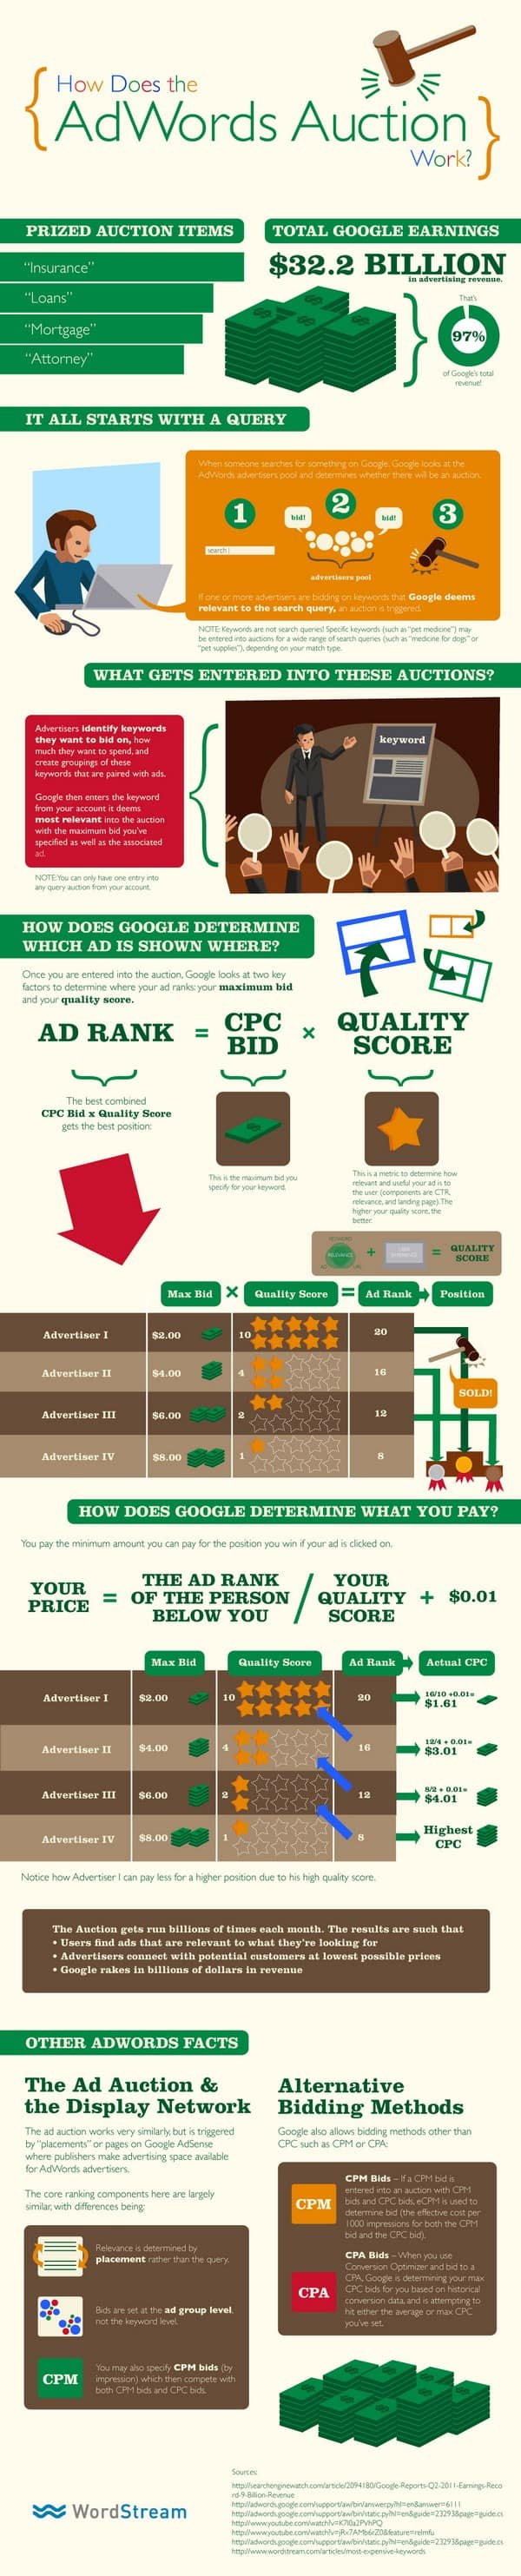 How Does the AdWords Auction Work Infographic